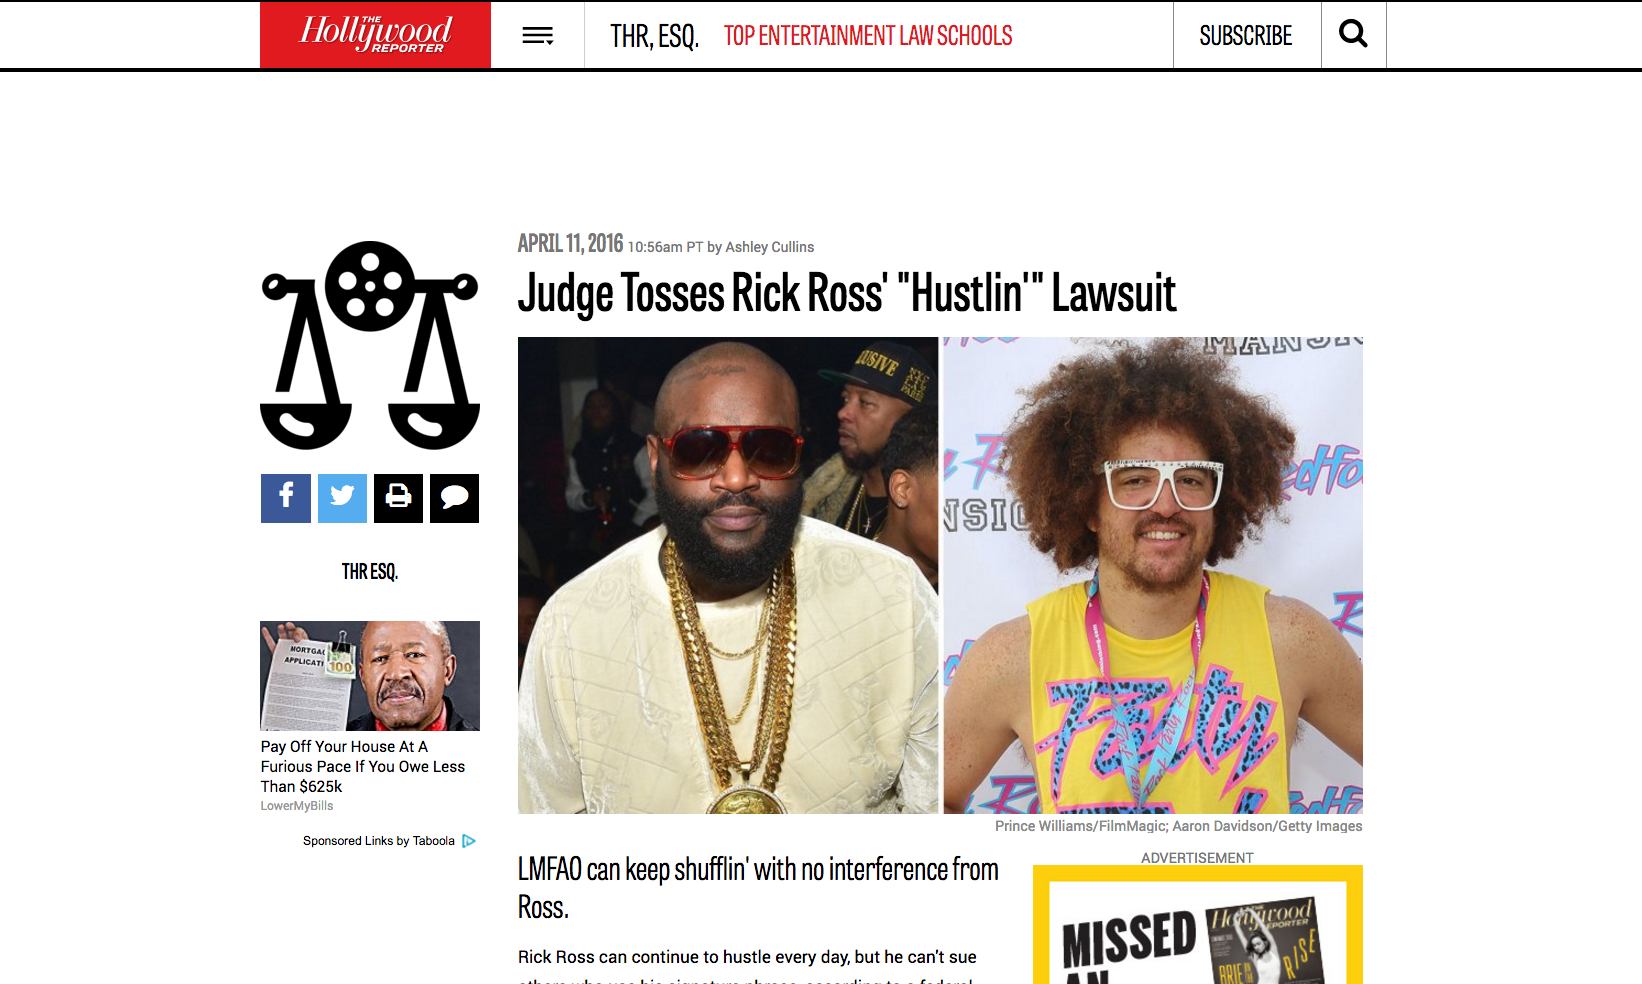 Rick Ross x Redfoo The Hollywood Reporter